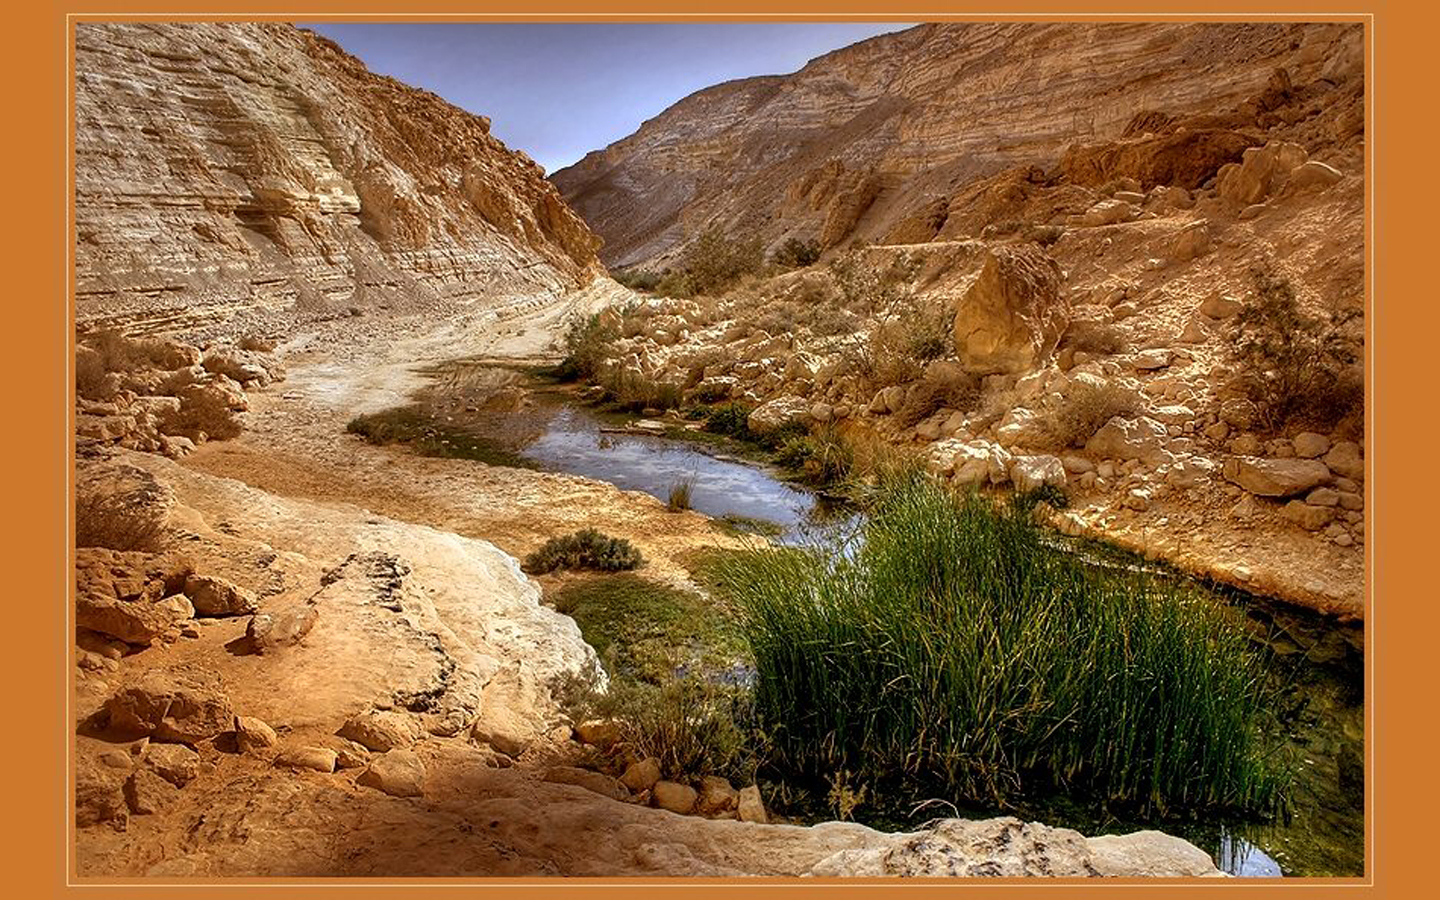 Desert stream nature 1280x768